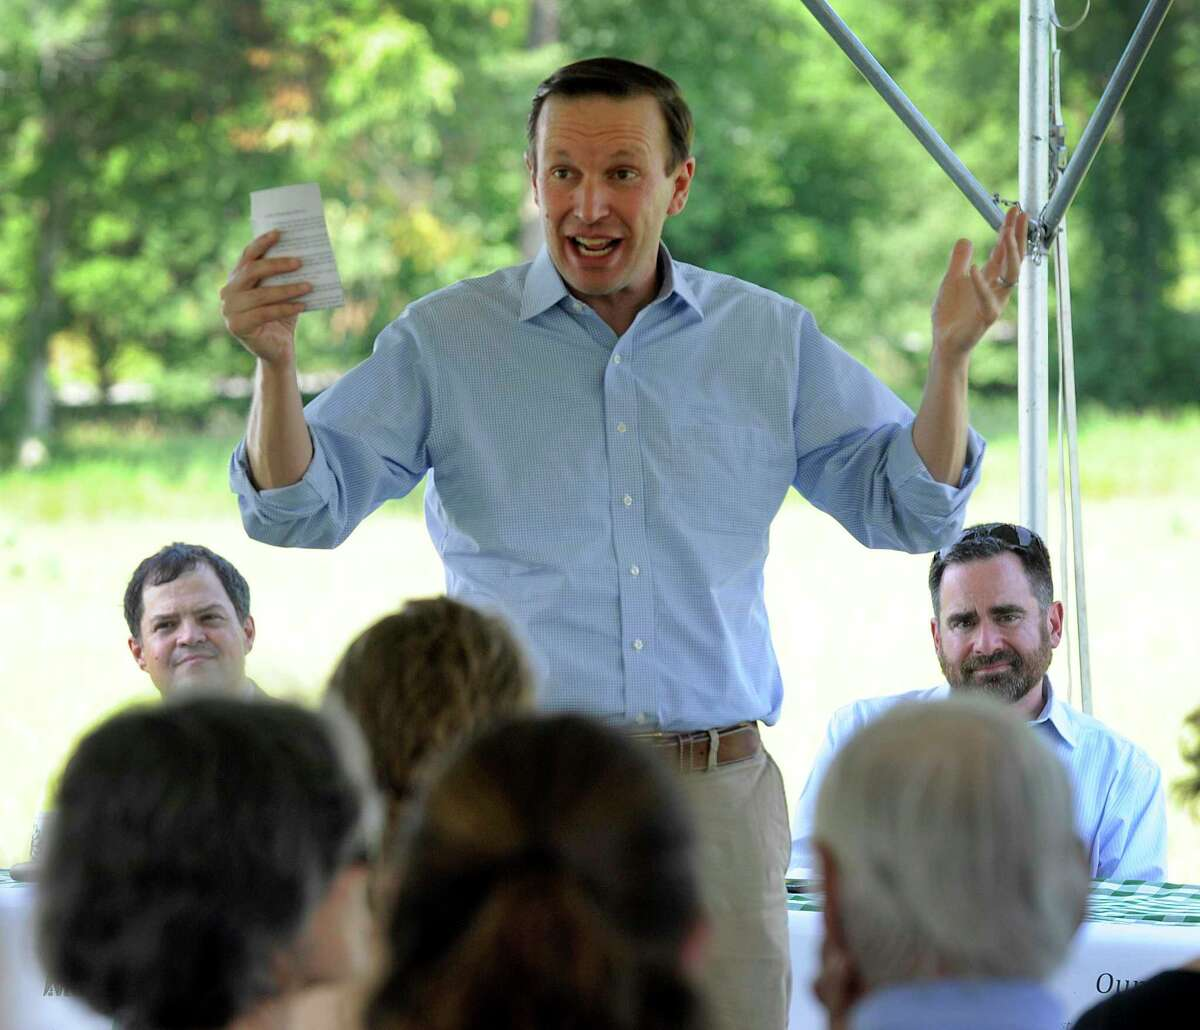 In 2018, S. Sen. Chris Murphy joined gathering to celebrate the Highlands Conservation Act. He is holding a Highlands Reauthorization Roundtable in Goshen June 28.